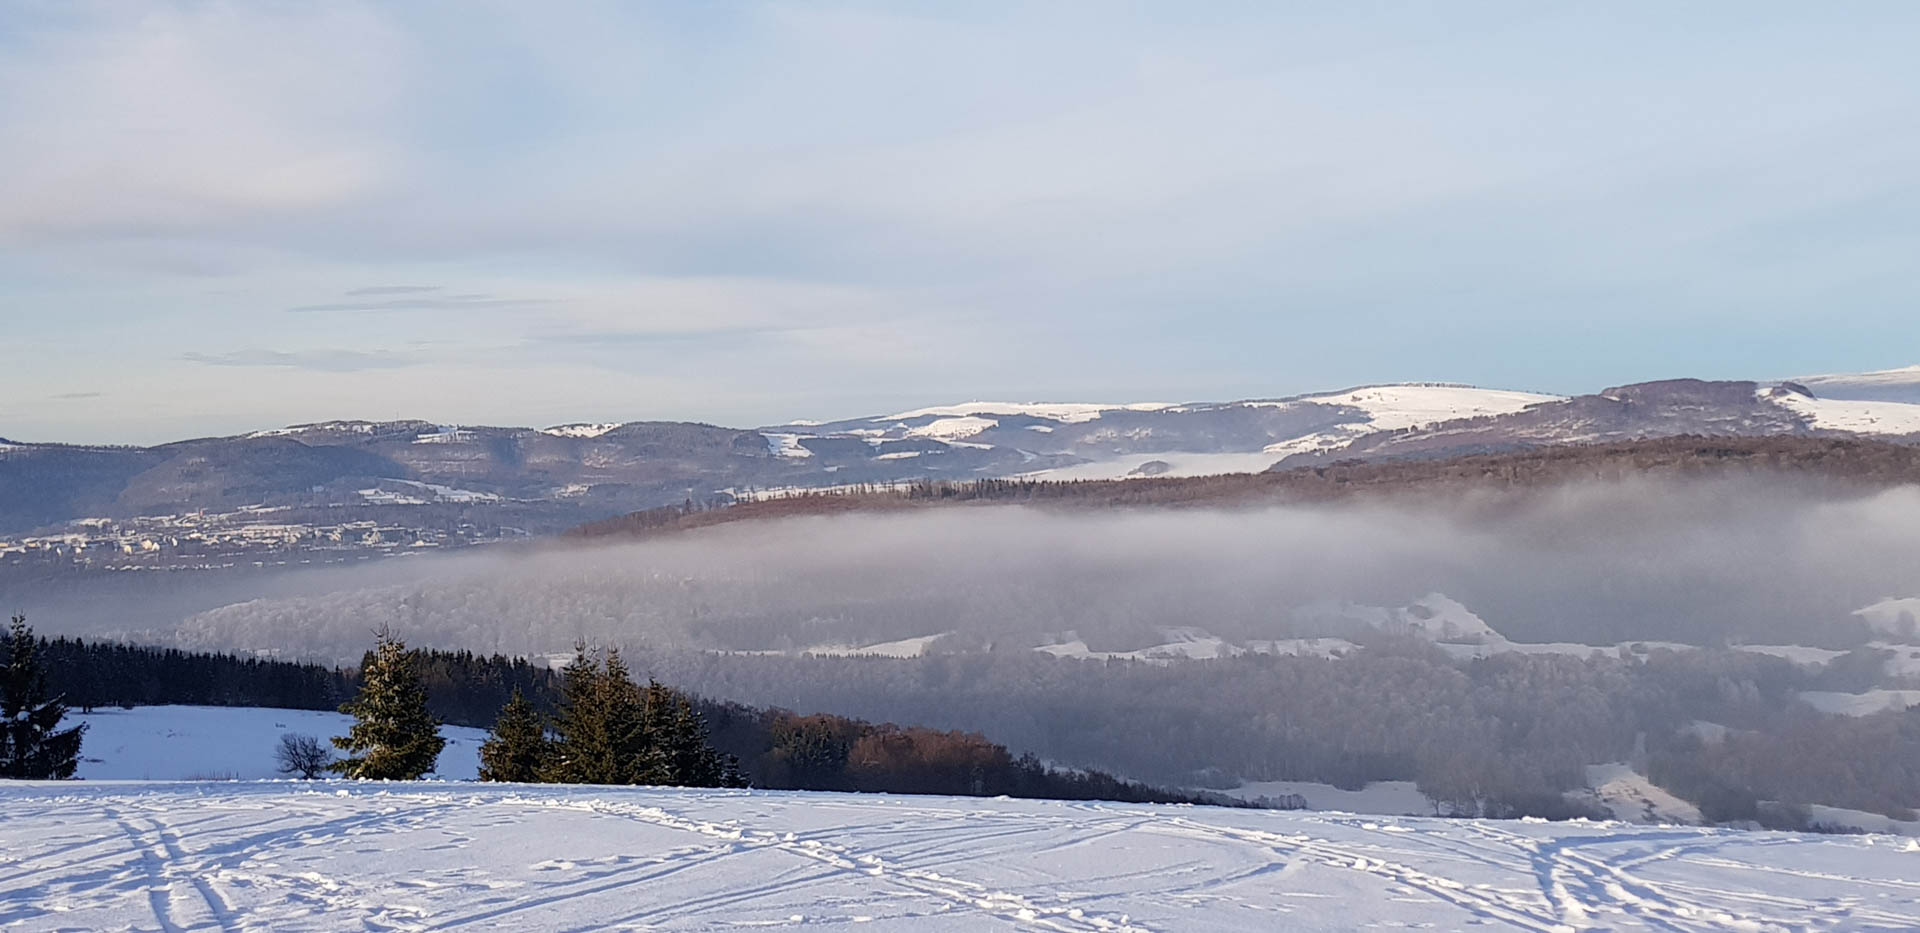 Feuerberg_Winter_2019-02-06-154